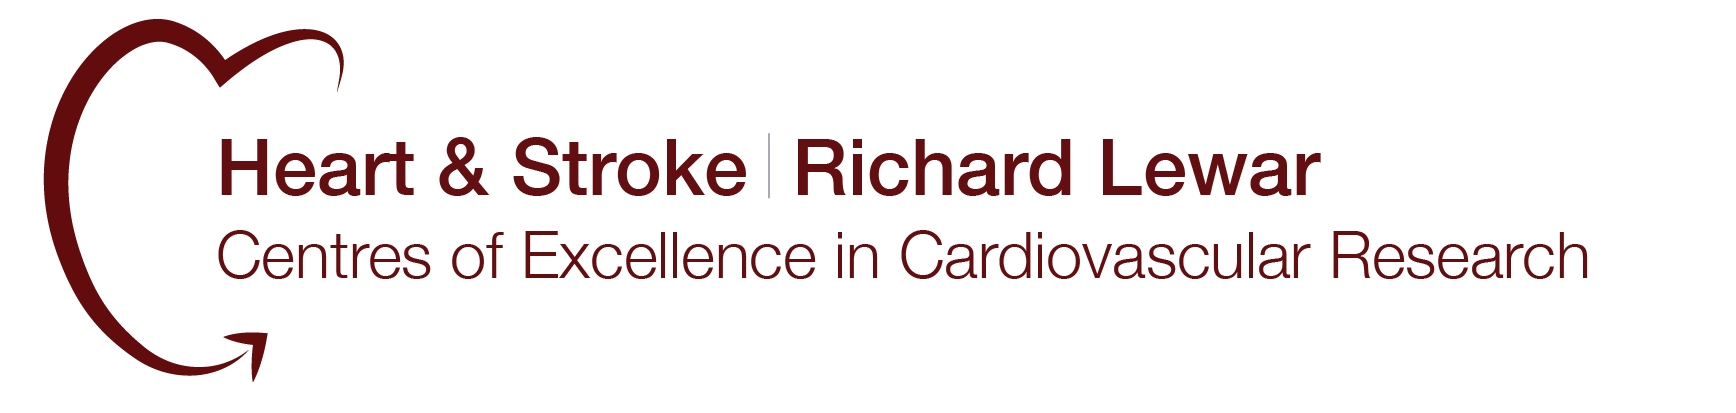 University of Toronto – Heart & Stroke/Richard Lewar Centre of Excellence in Cardiovascular Research